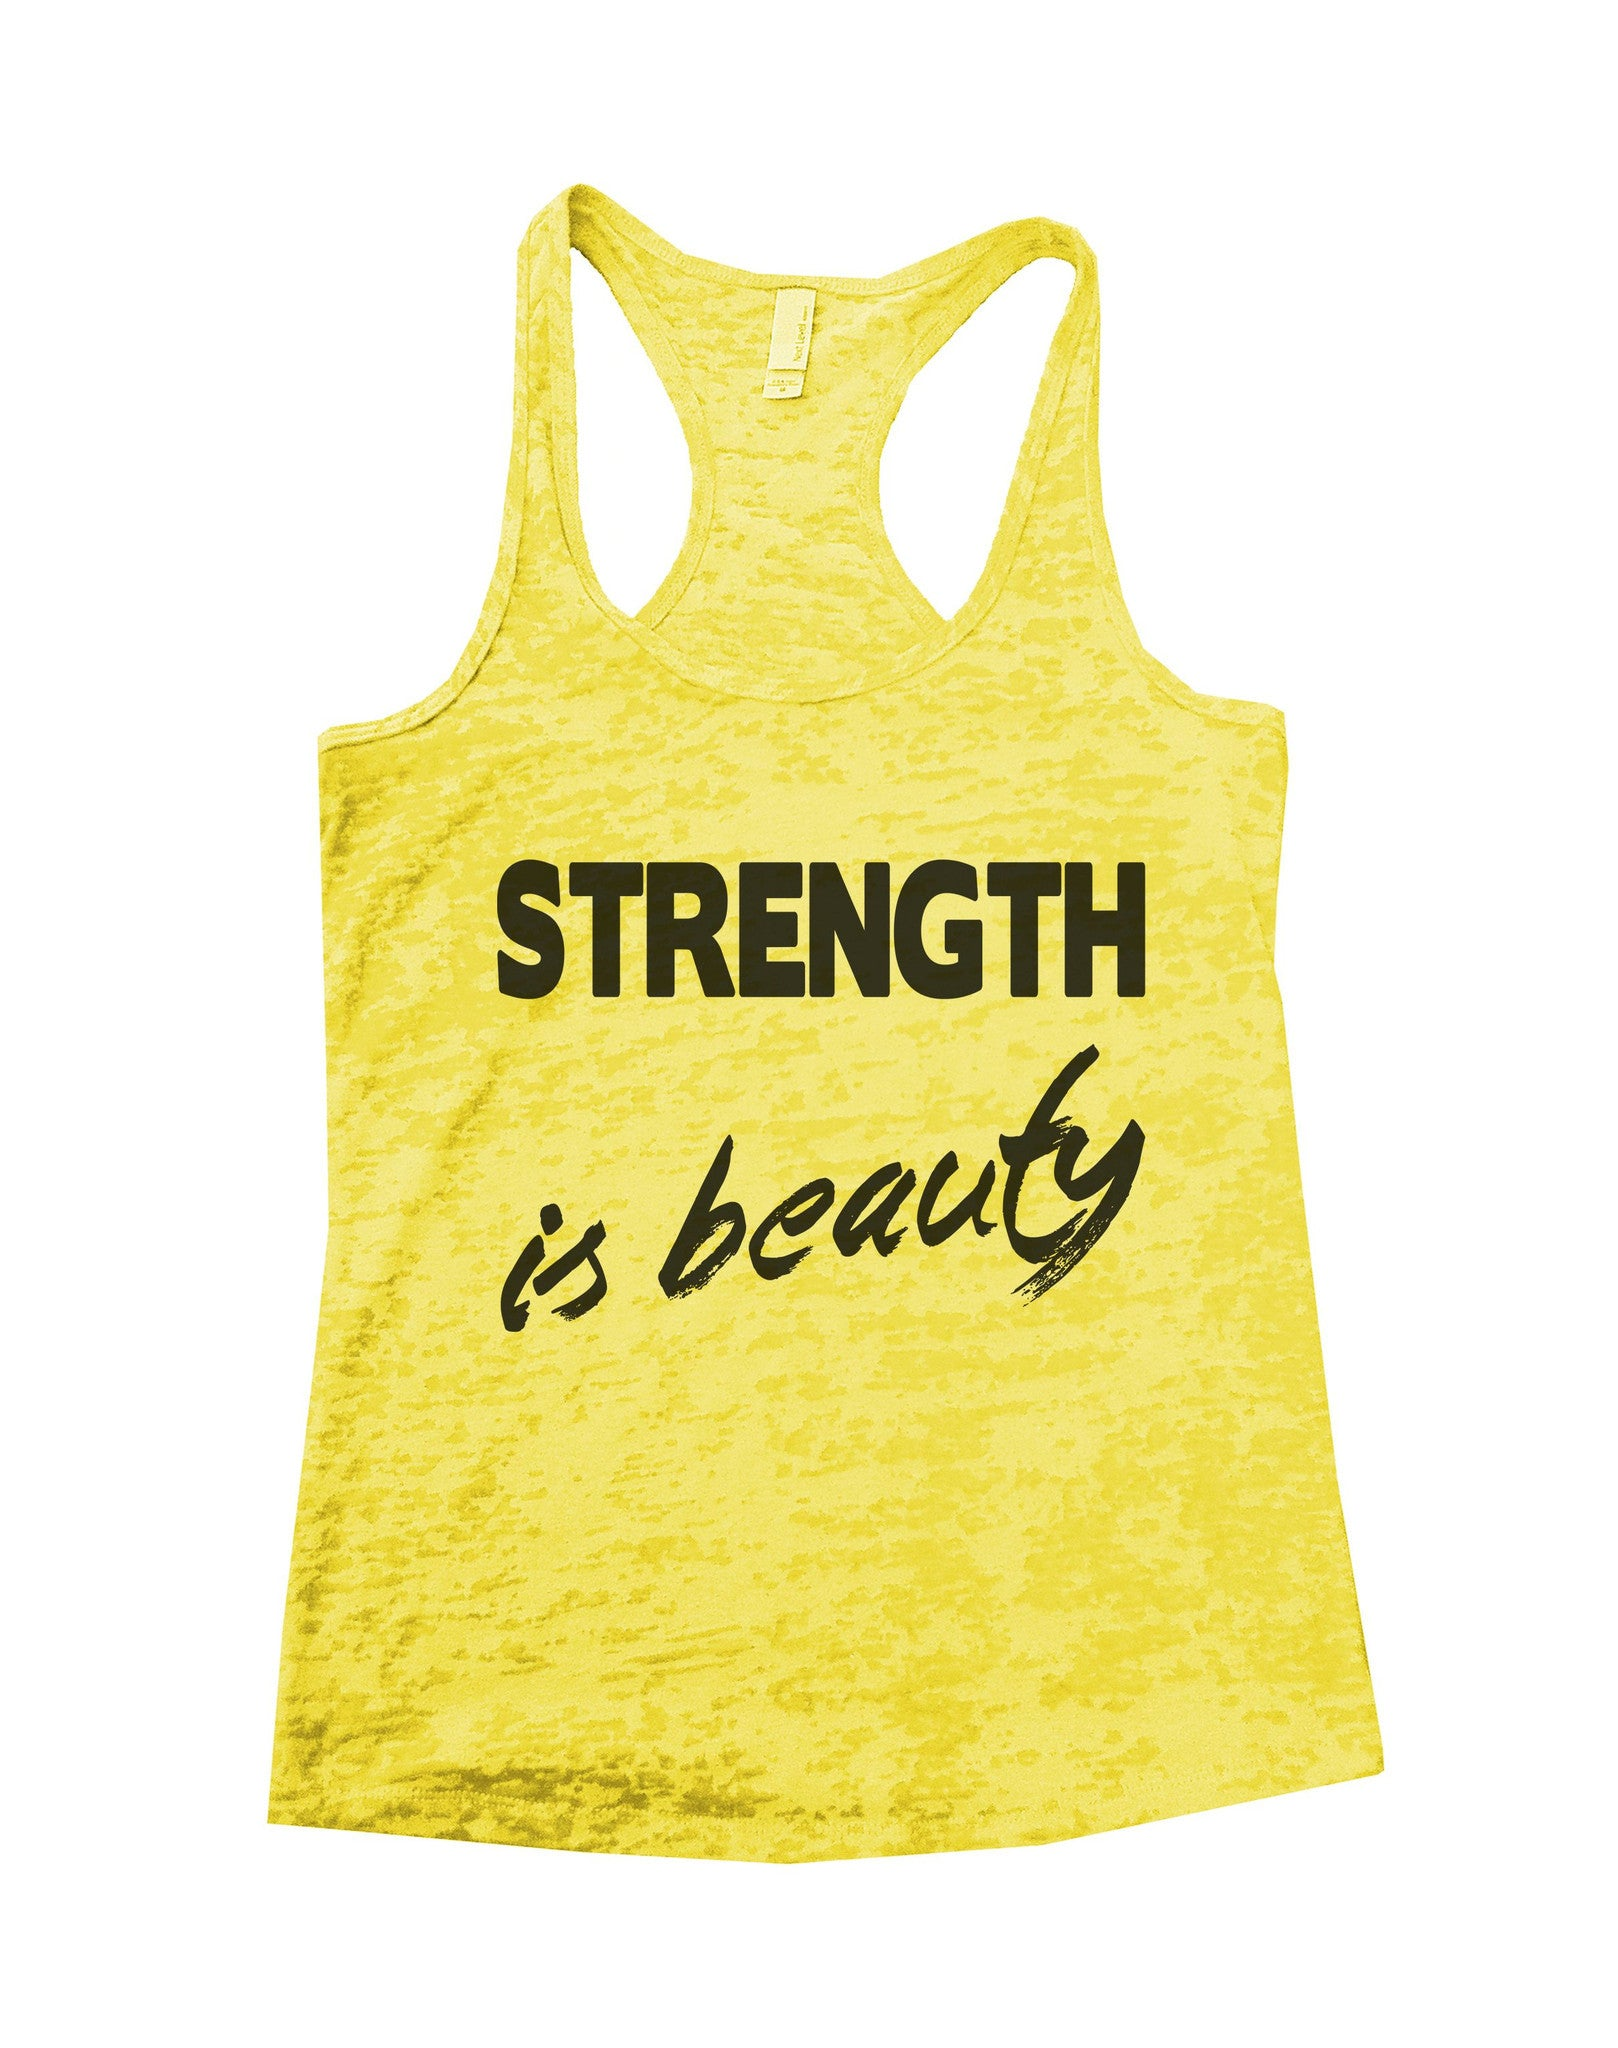 Strength Is Beauty Burnout Tank Top By BurnoutTankTops.com - 690 - Funny Shirts Tank Tops Burnouts and Triblends  - 4